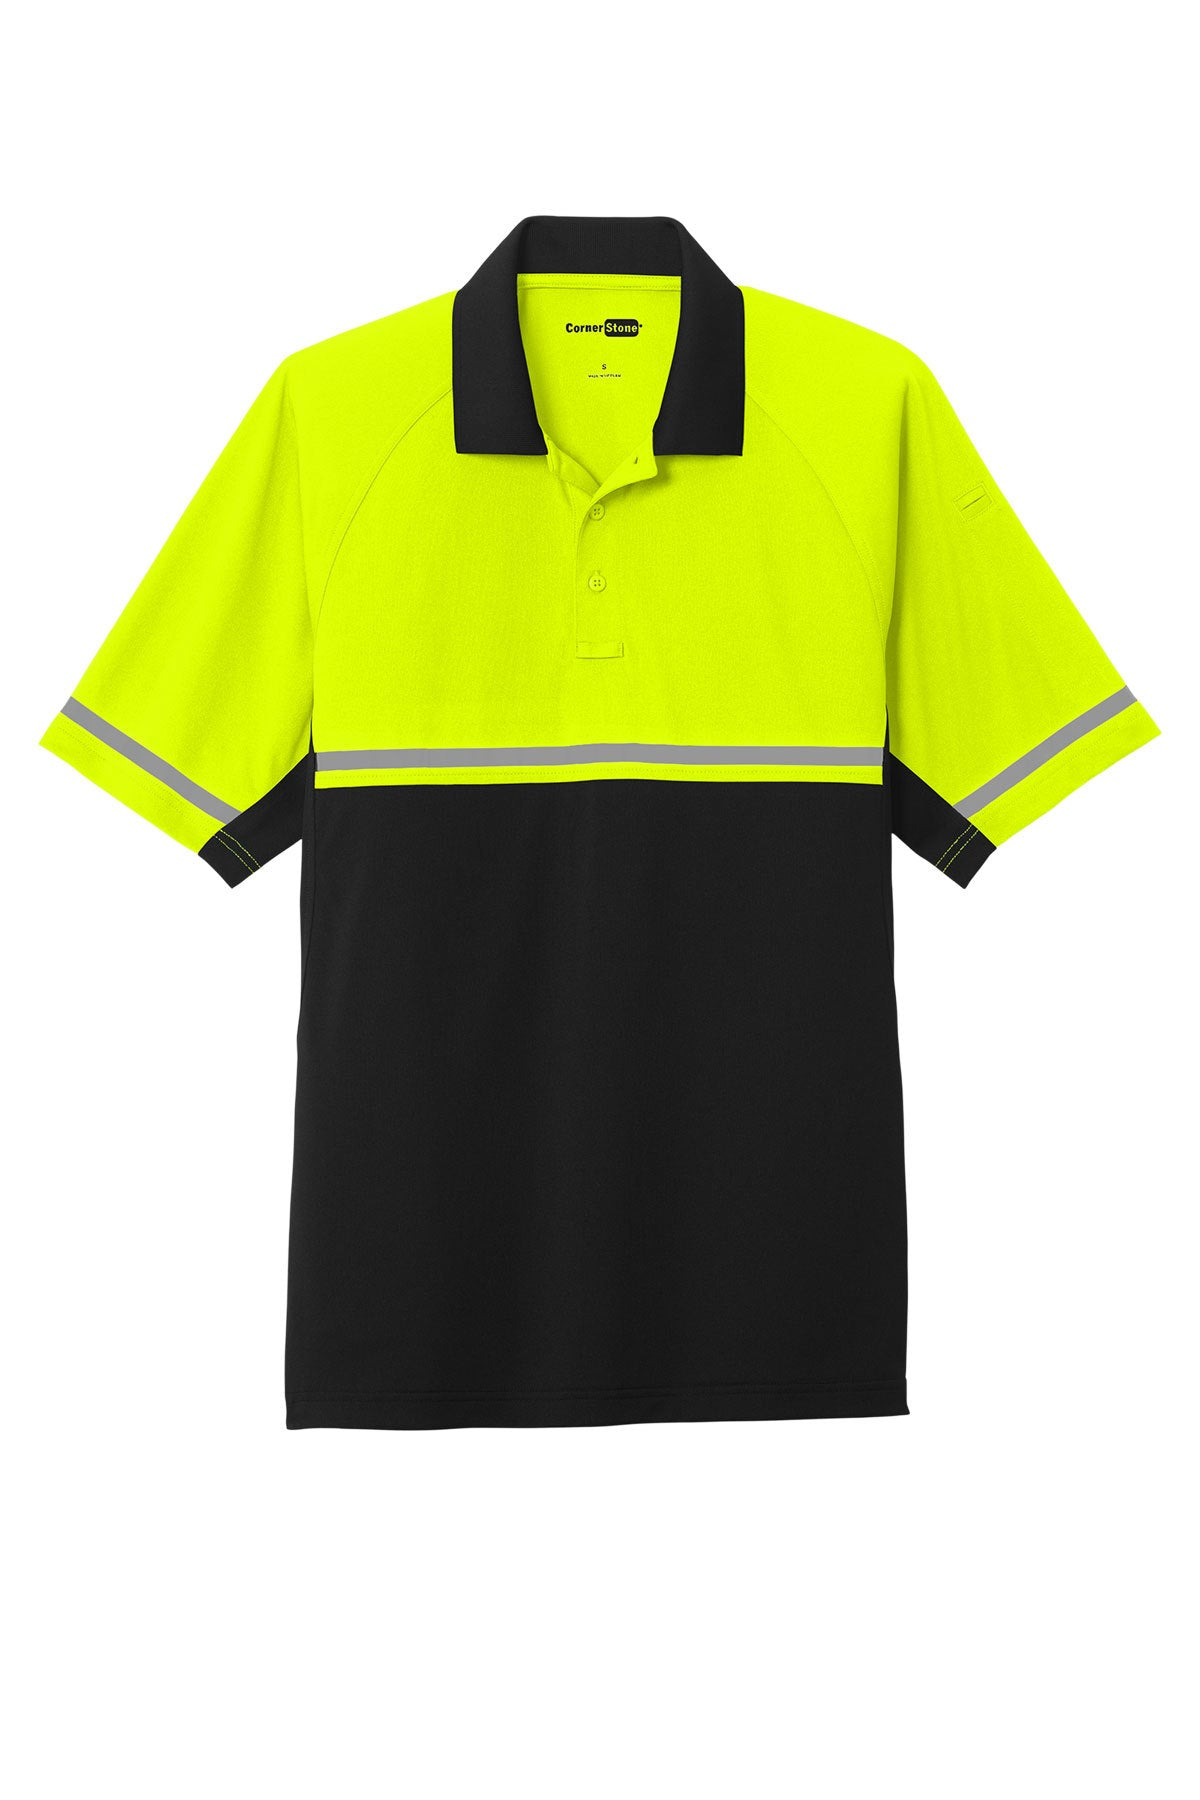 CS423 CornerStone ® Select Lightweight Snag-Proof Enhanced Visibility Polo